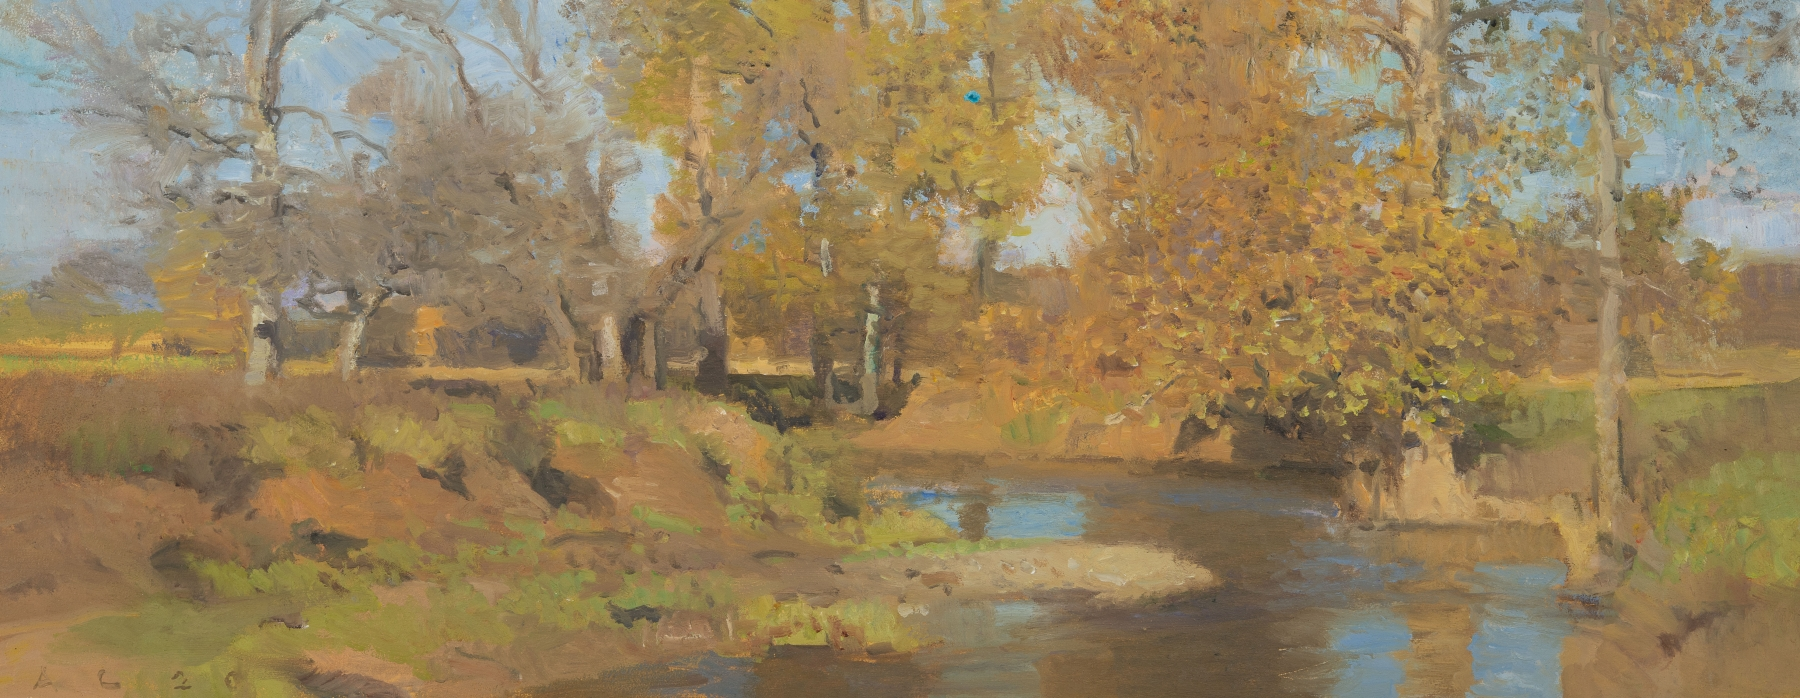 """Swoope Fall I  8"""" x 20.25""""  Oil On Panel"""